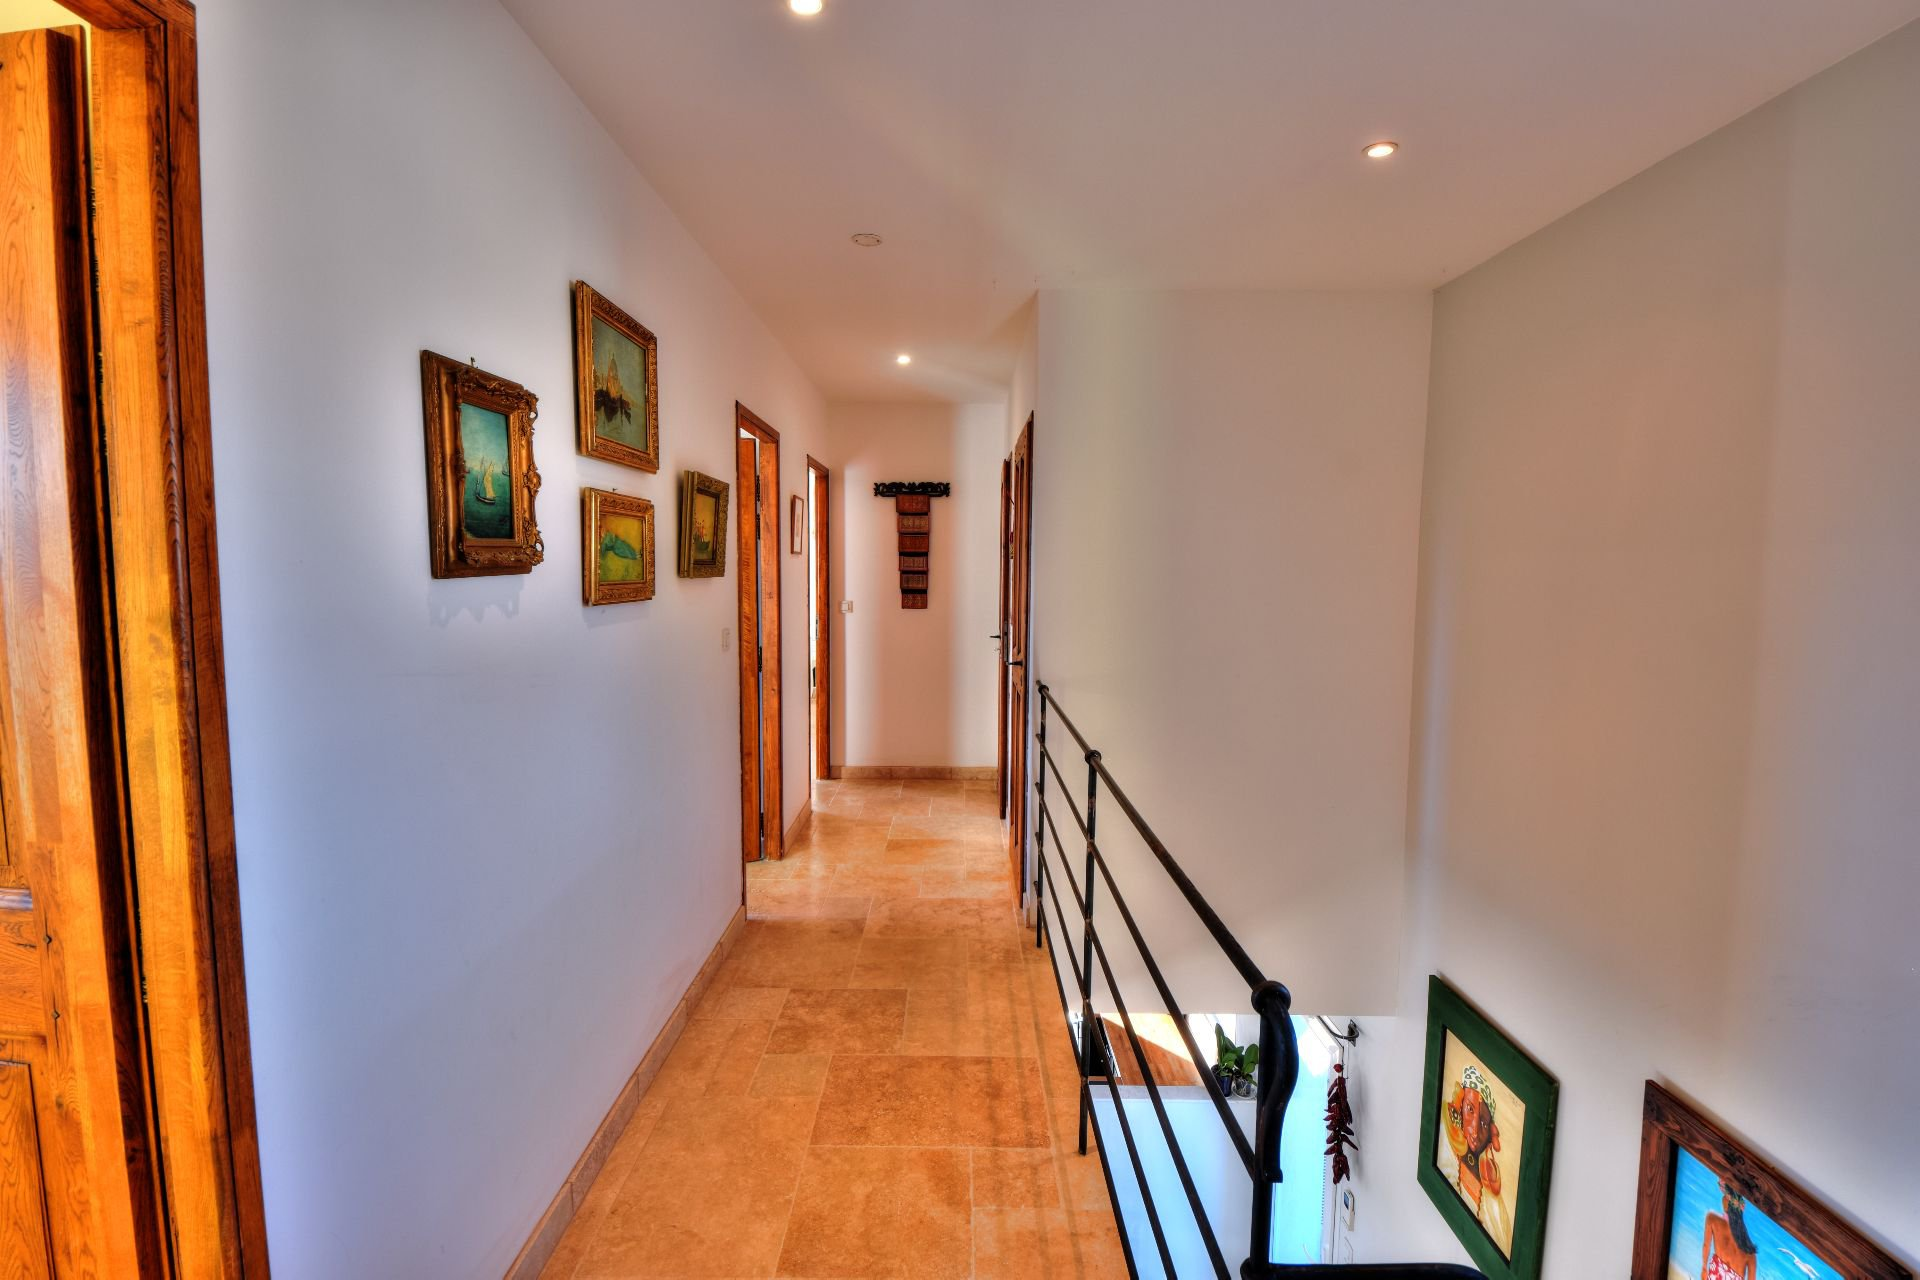 102/5000 Corridor of access to the rooms on the first floor of the bastide 4 bedrooms with swimming pool Aups, Var, Provence